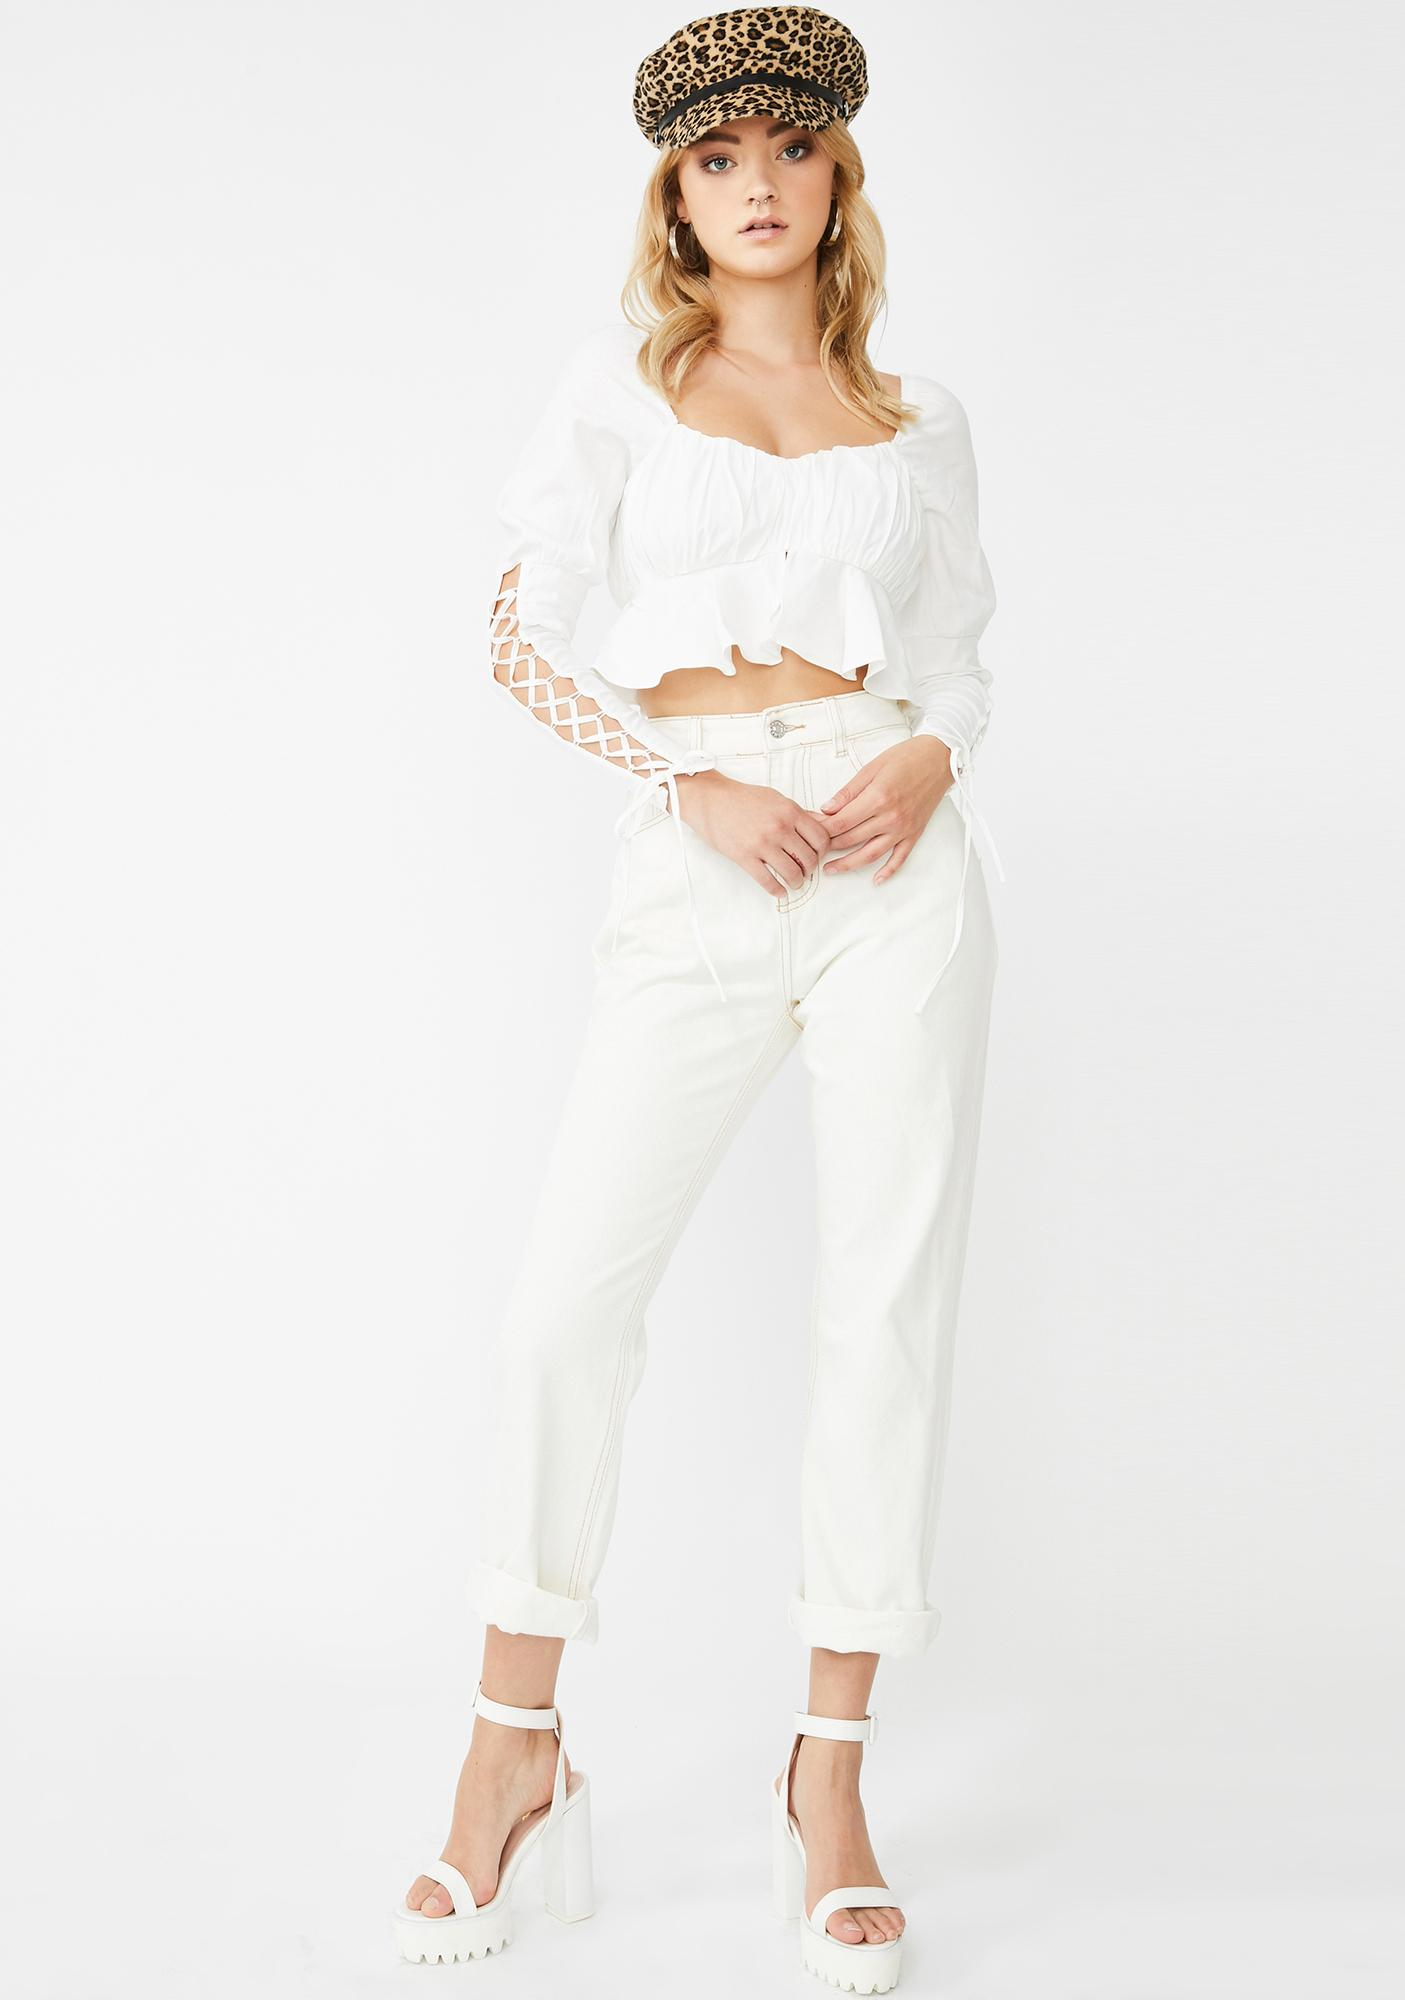 Honey Punch Heavenly Serenity Lace-Up Blouse